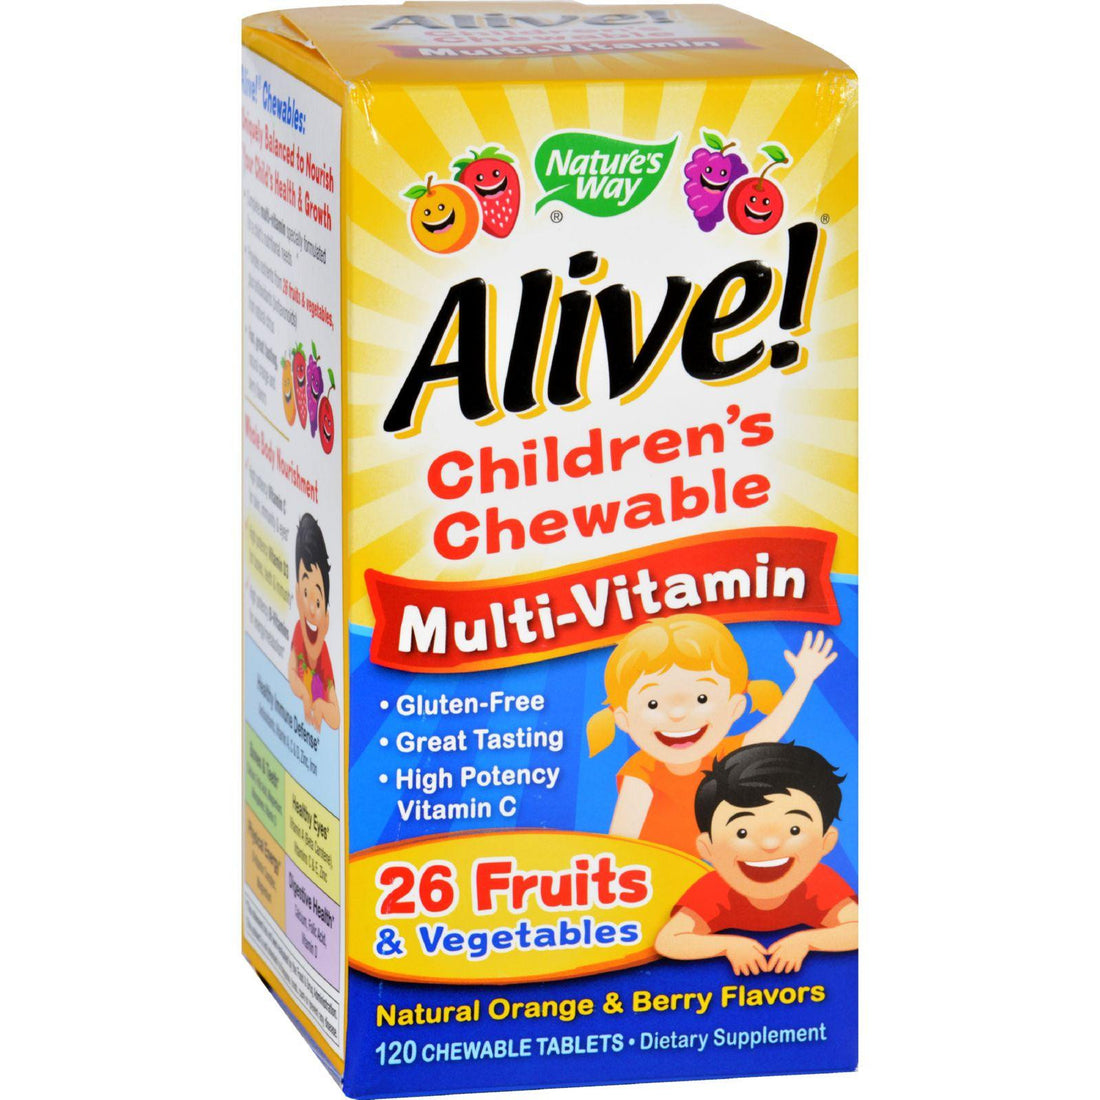 Mother Mantis: Nature's Way Alive Children's Multi-vitamin Chewable Natural Orange And Berry - 120 Chewable Tablets Nature's Way